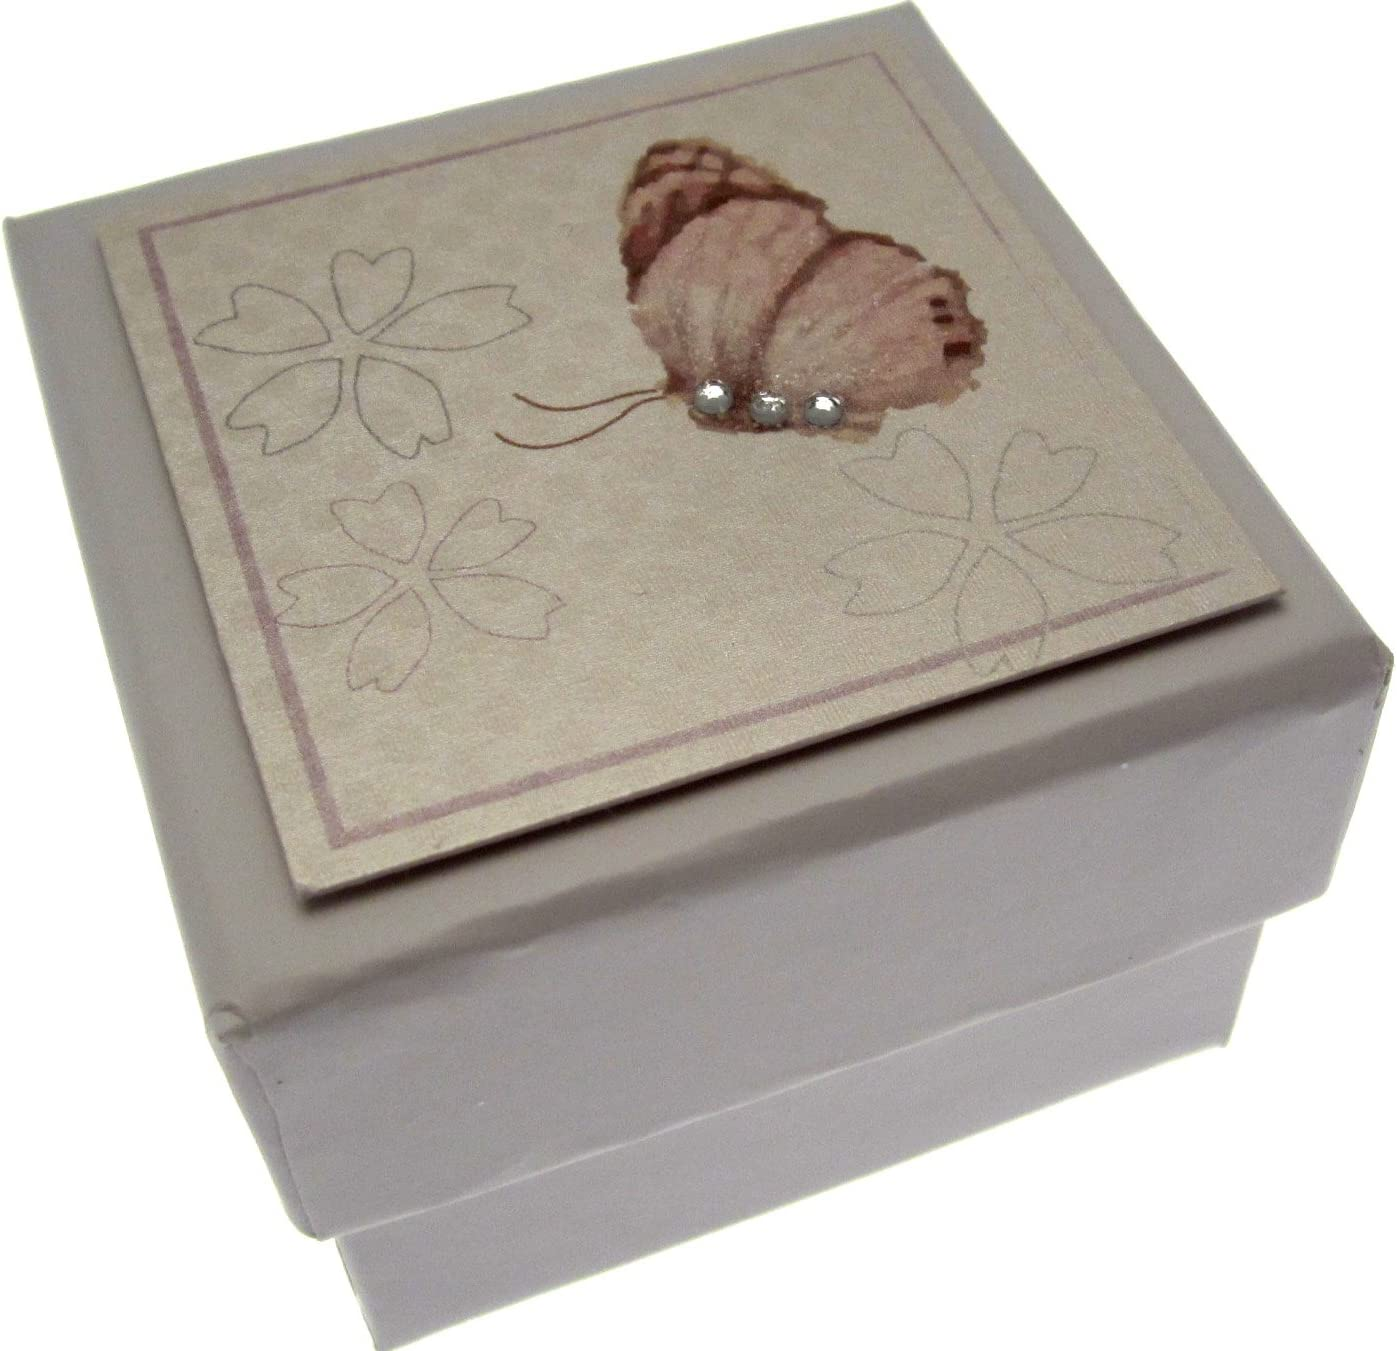 Code BX25 WHITE COTTON CARDS Butterfly Party//Gift//Favour Solid Box 5.5cm x 5.5cm